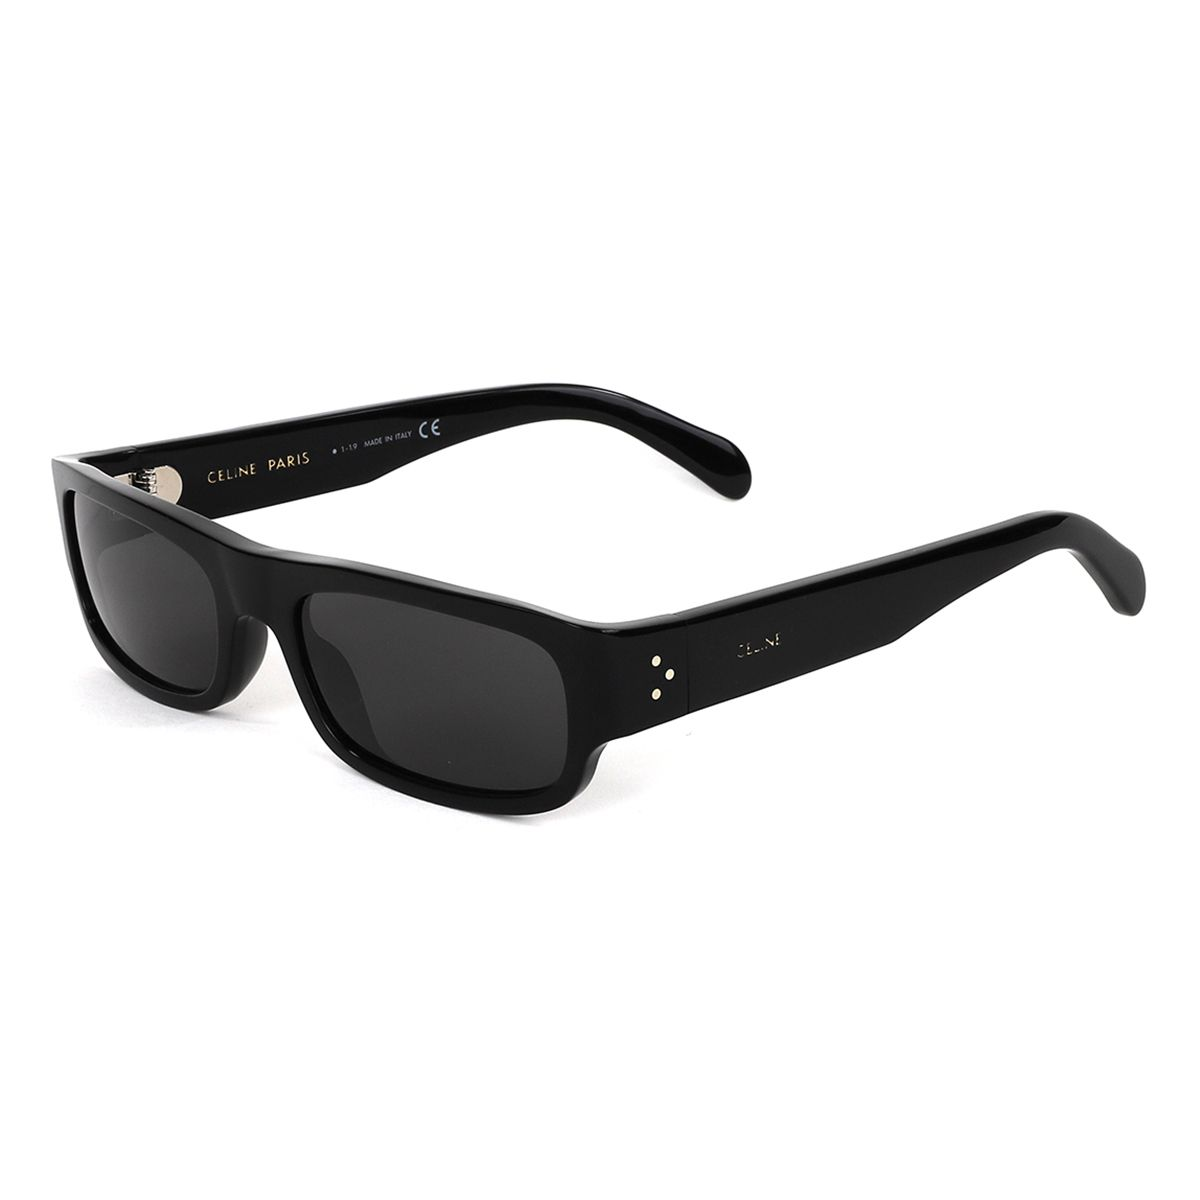 CELINE SUNGLASSES/3KITCLBIGS00 / BLACK(BLACK)